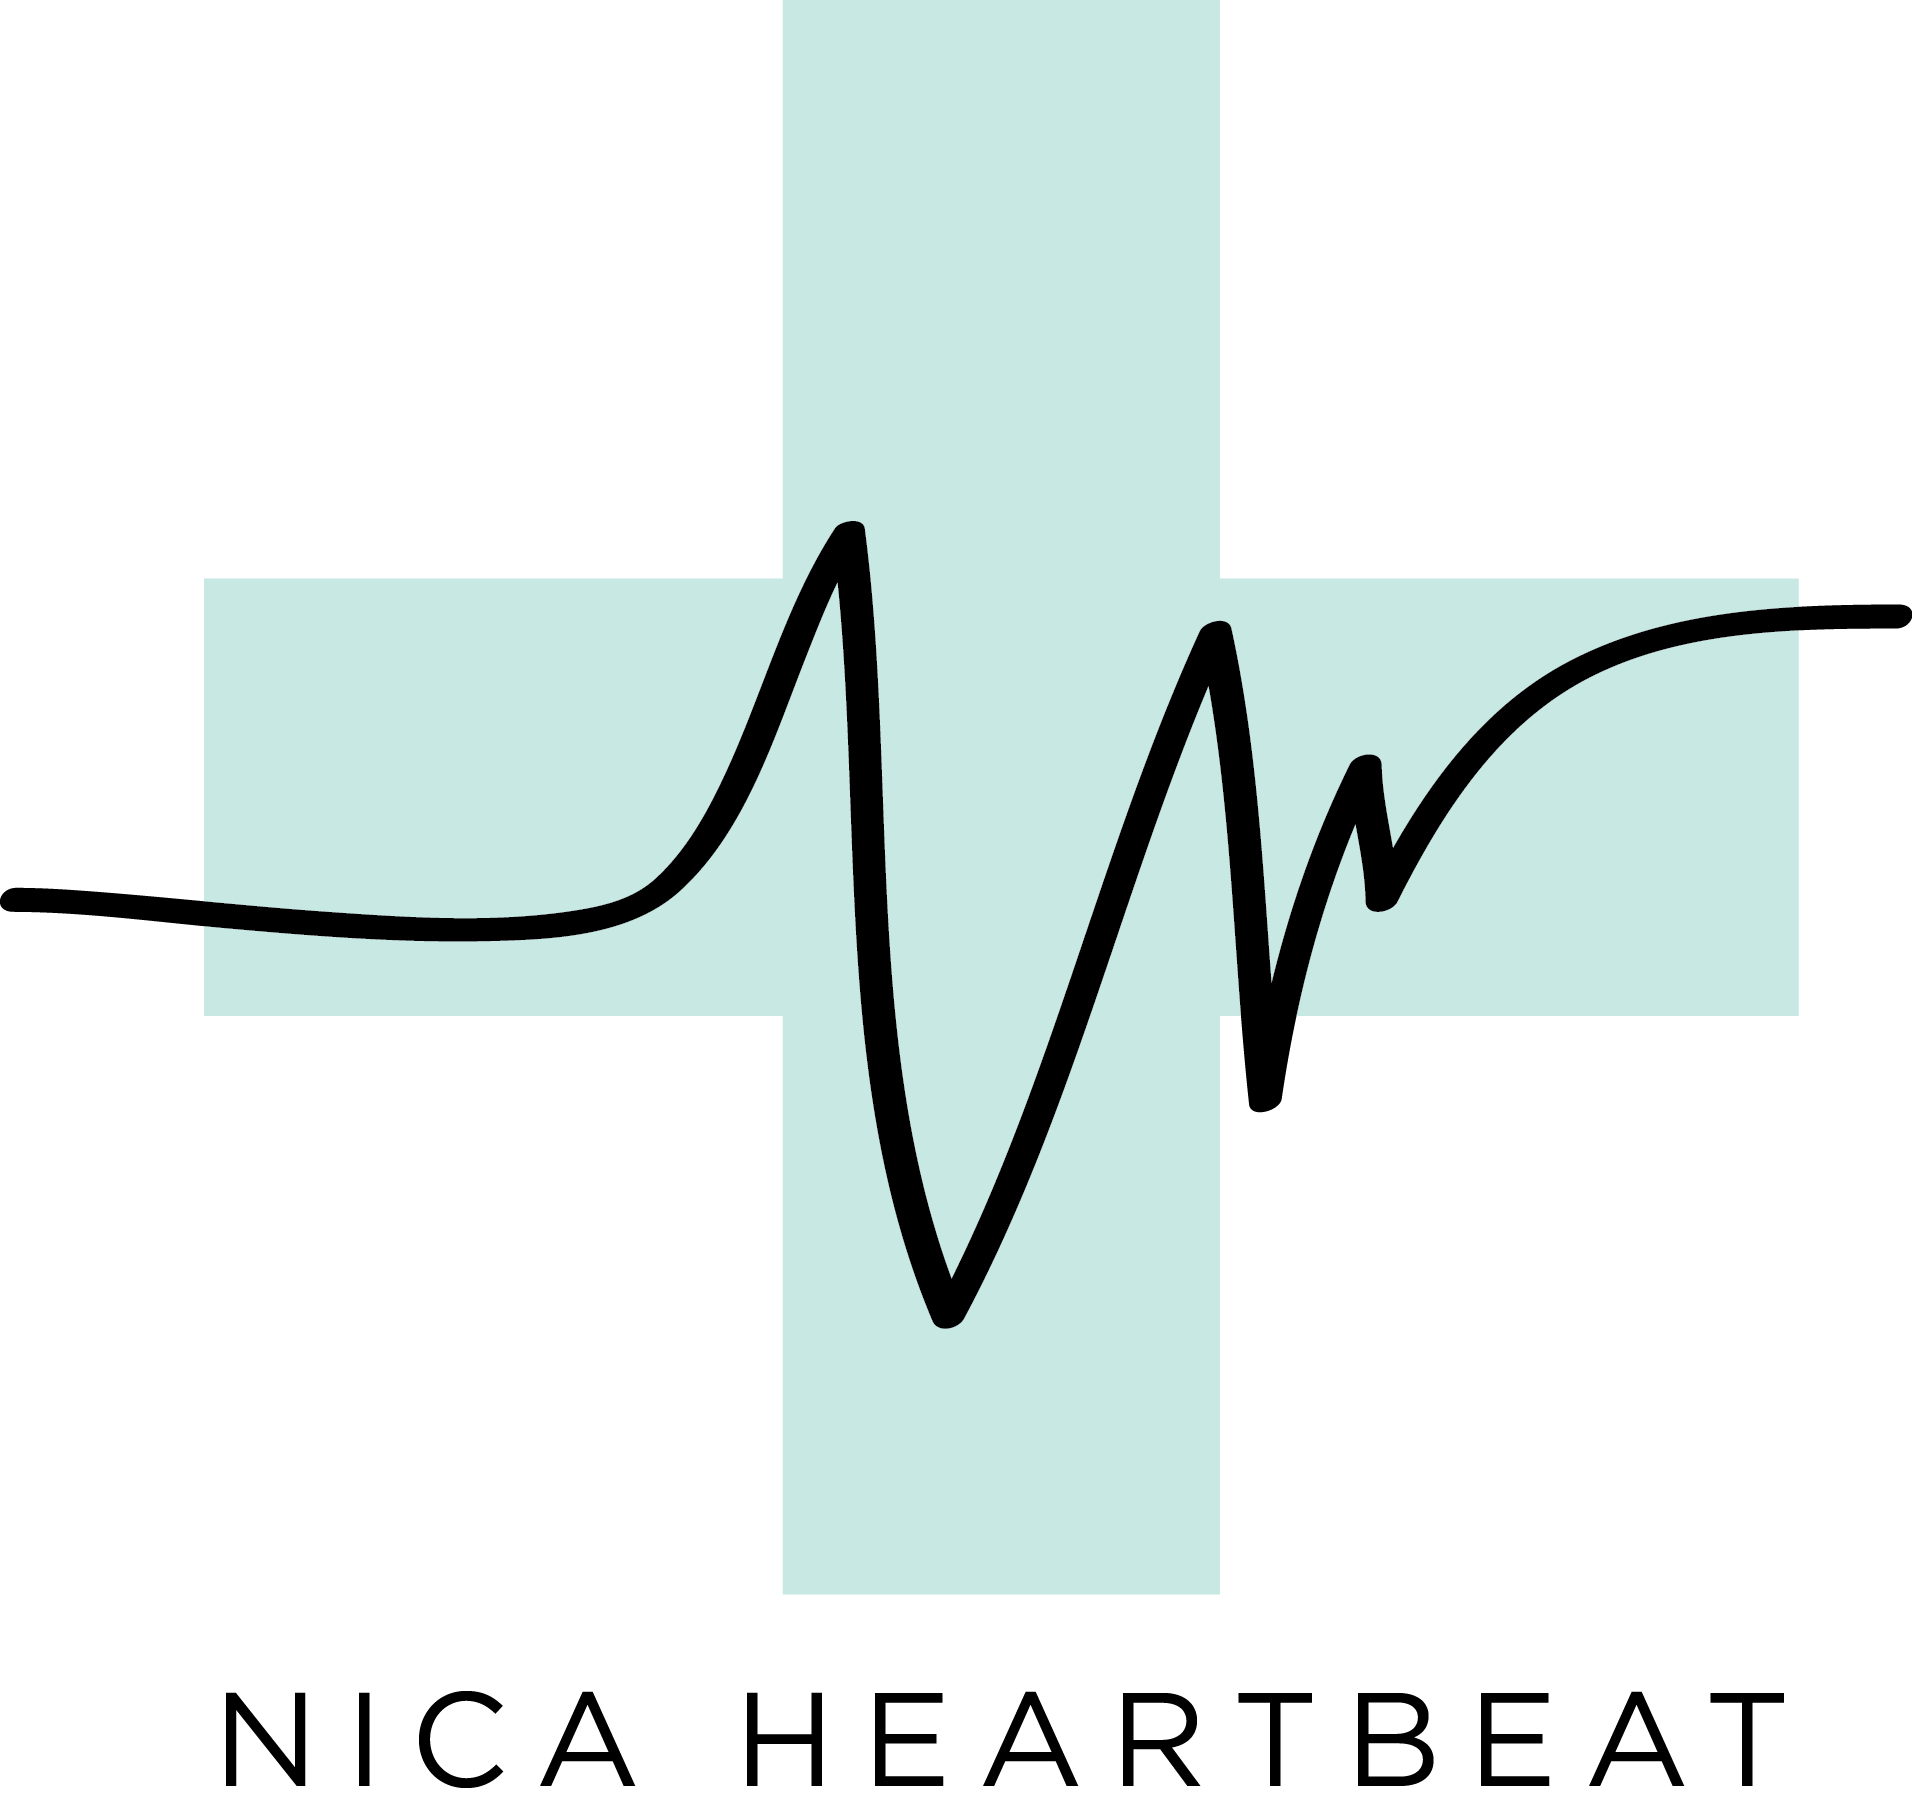 Heartbeat clipart doctor. Home nicaheartbeat